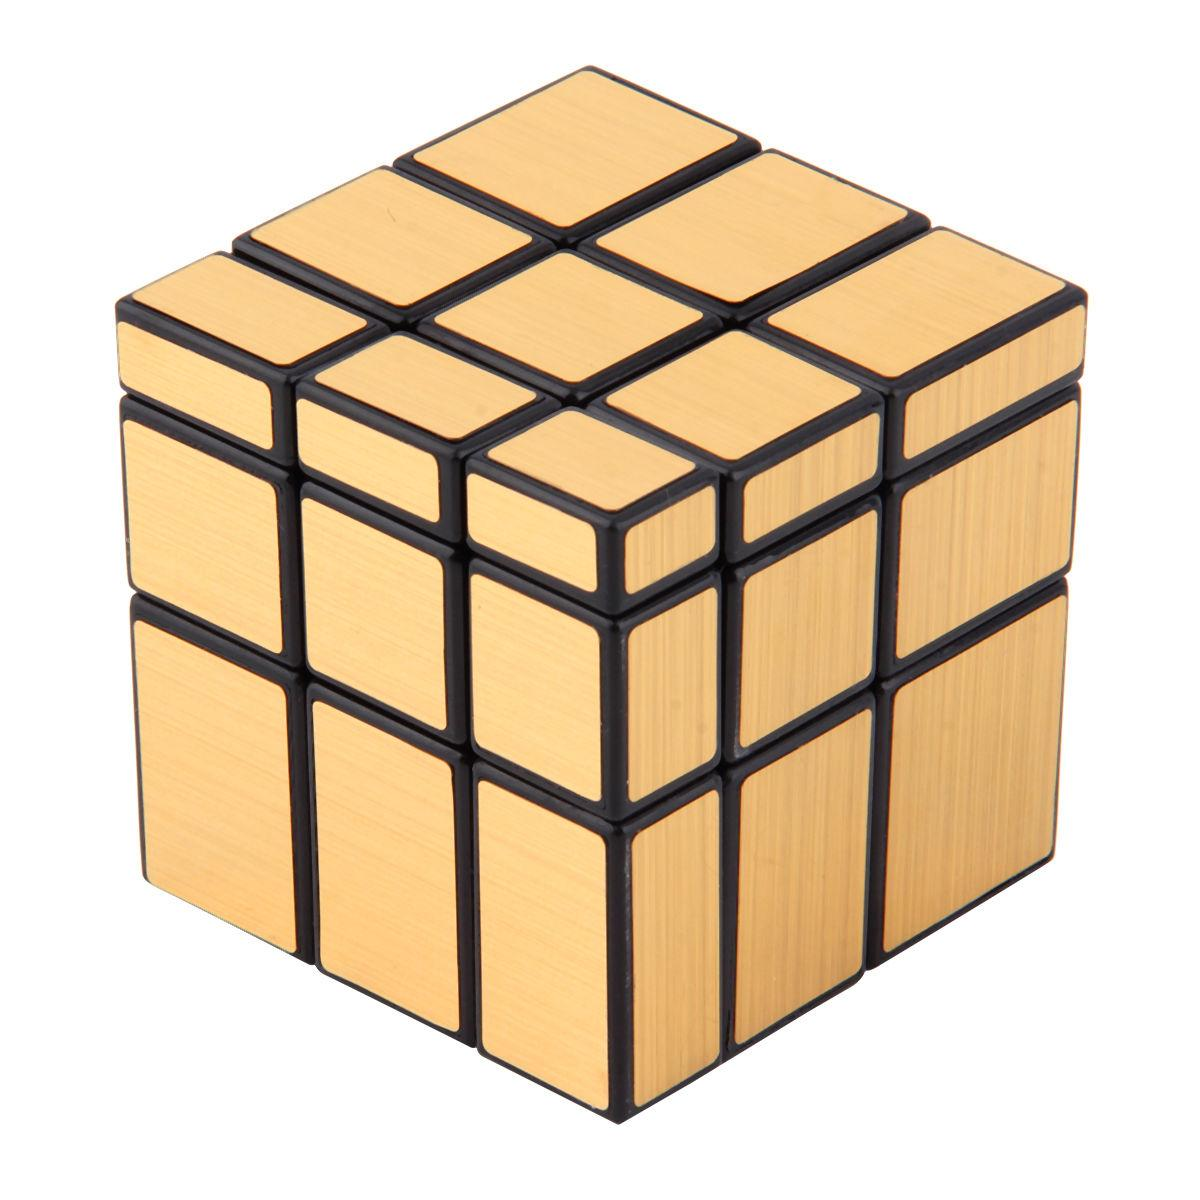 shengshou mirror magic cube golden mirror cube black body with golden stickers and black body. Black Bedroom Furniture Sets. Home Design Ideas